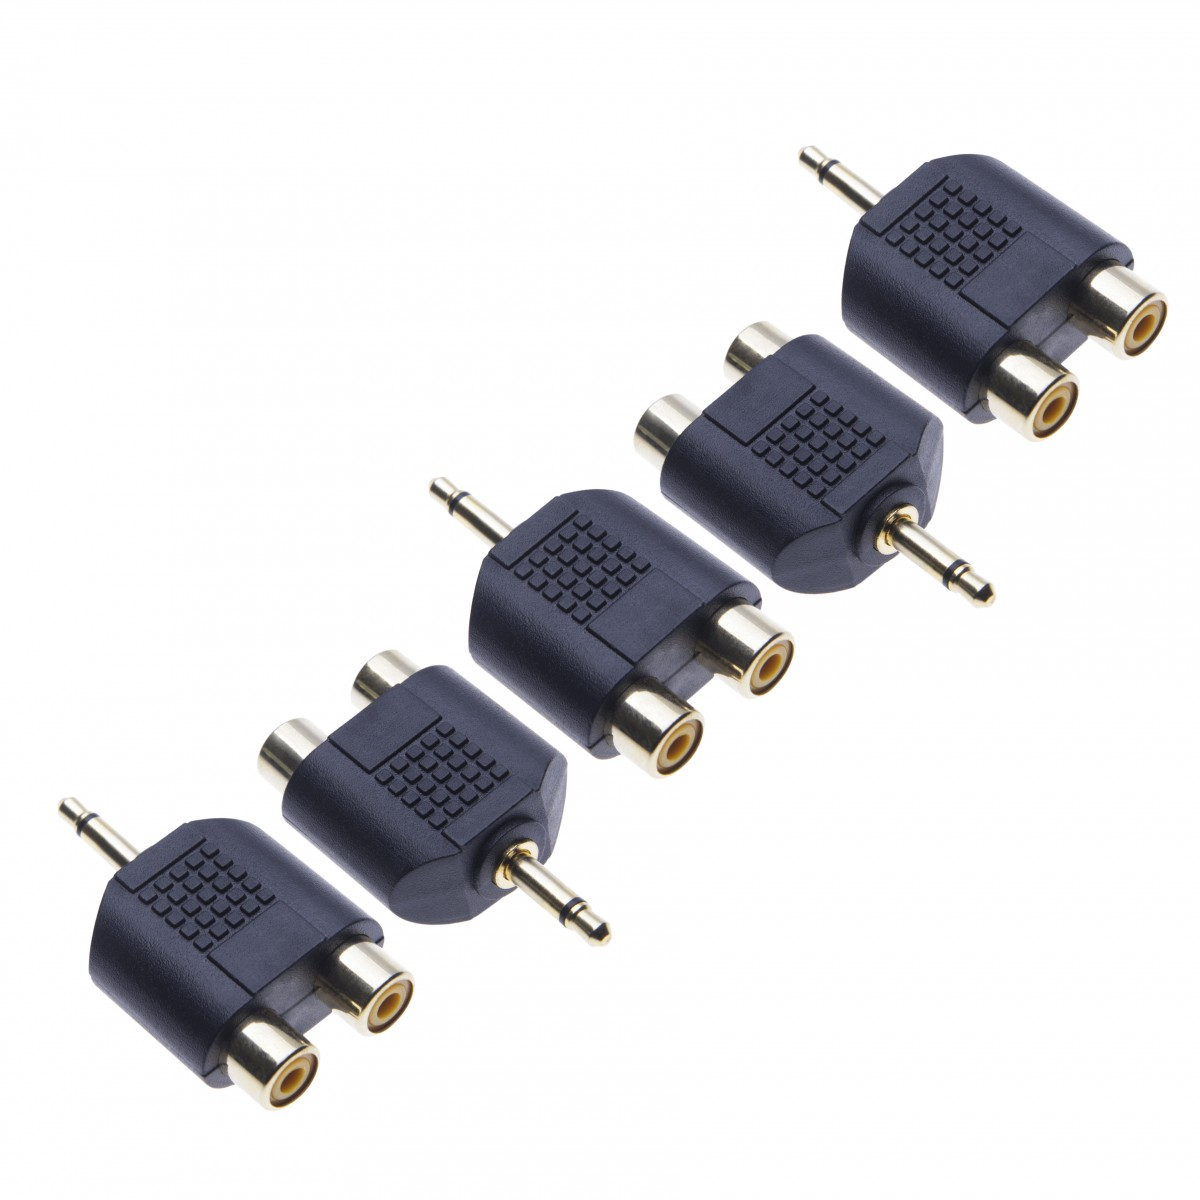 5 PACK 3.5mm Stereo Female Jack to 3.5mm Mono Male Plug Audio Converter Adapter